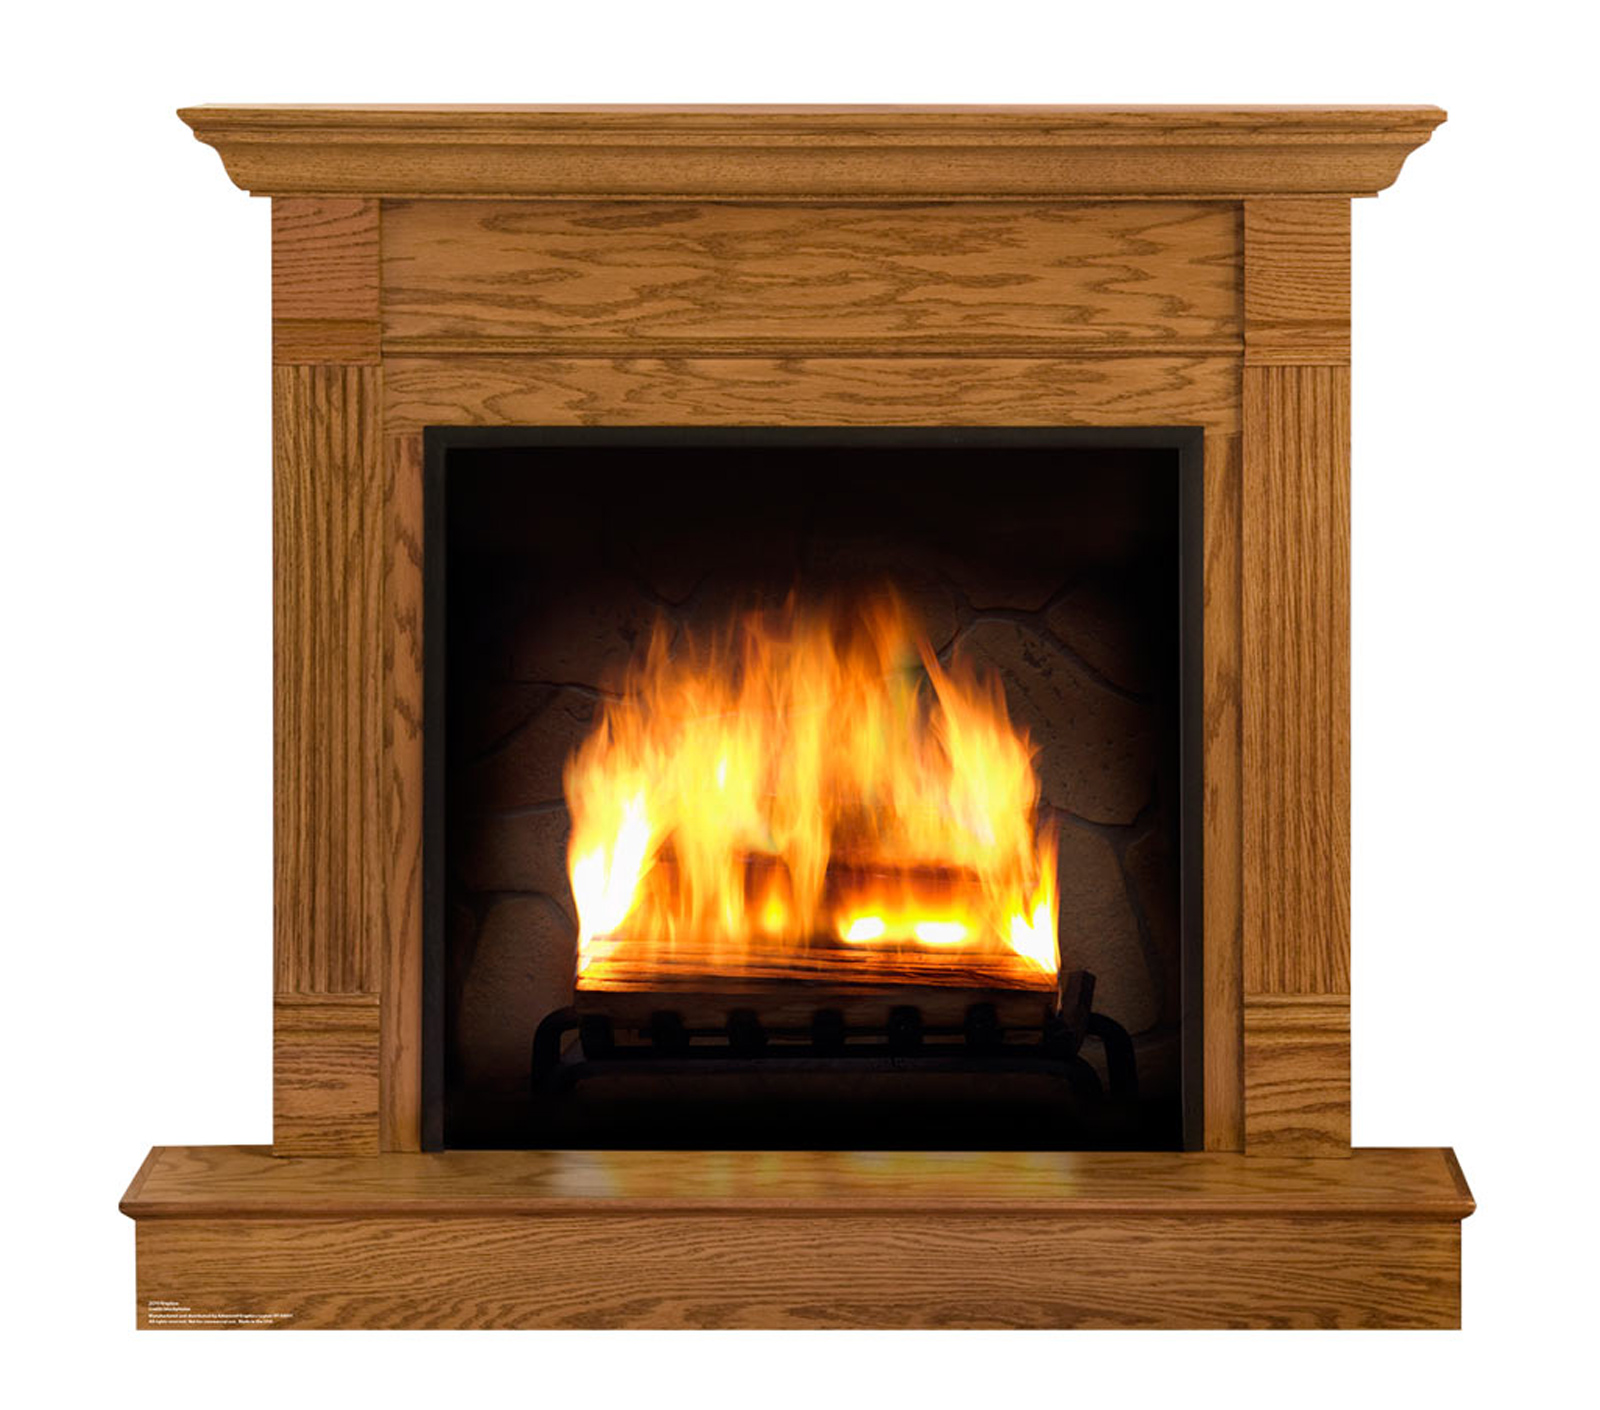 Best Fake Fireplace Life Size Cardboard Cutout Standup This Month